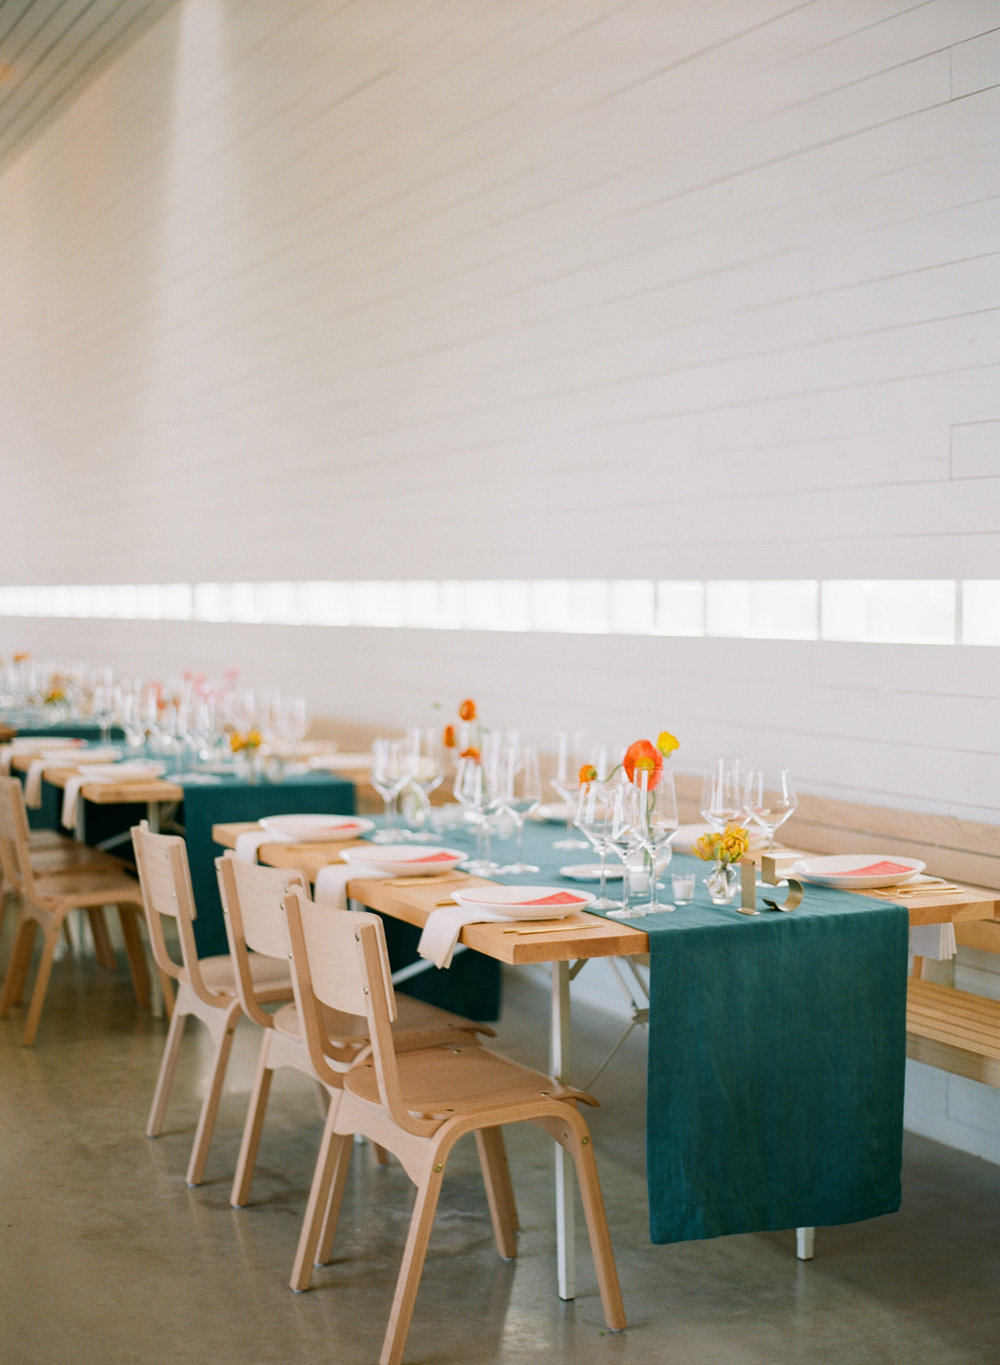 PROSPECT_HOUSE_WEDDING_AUSTIN_TX_BY_MATTHEW_MOORE_PHOTOGRAPHY_00200.jpg